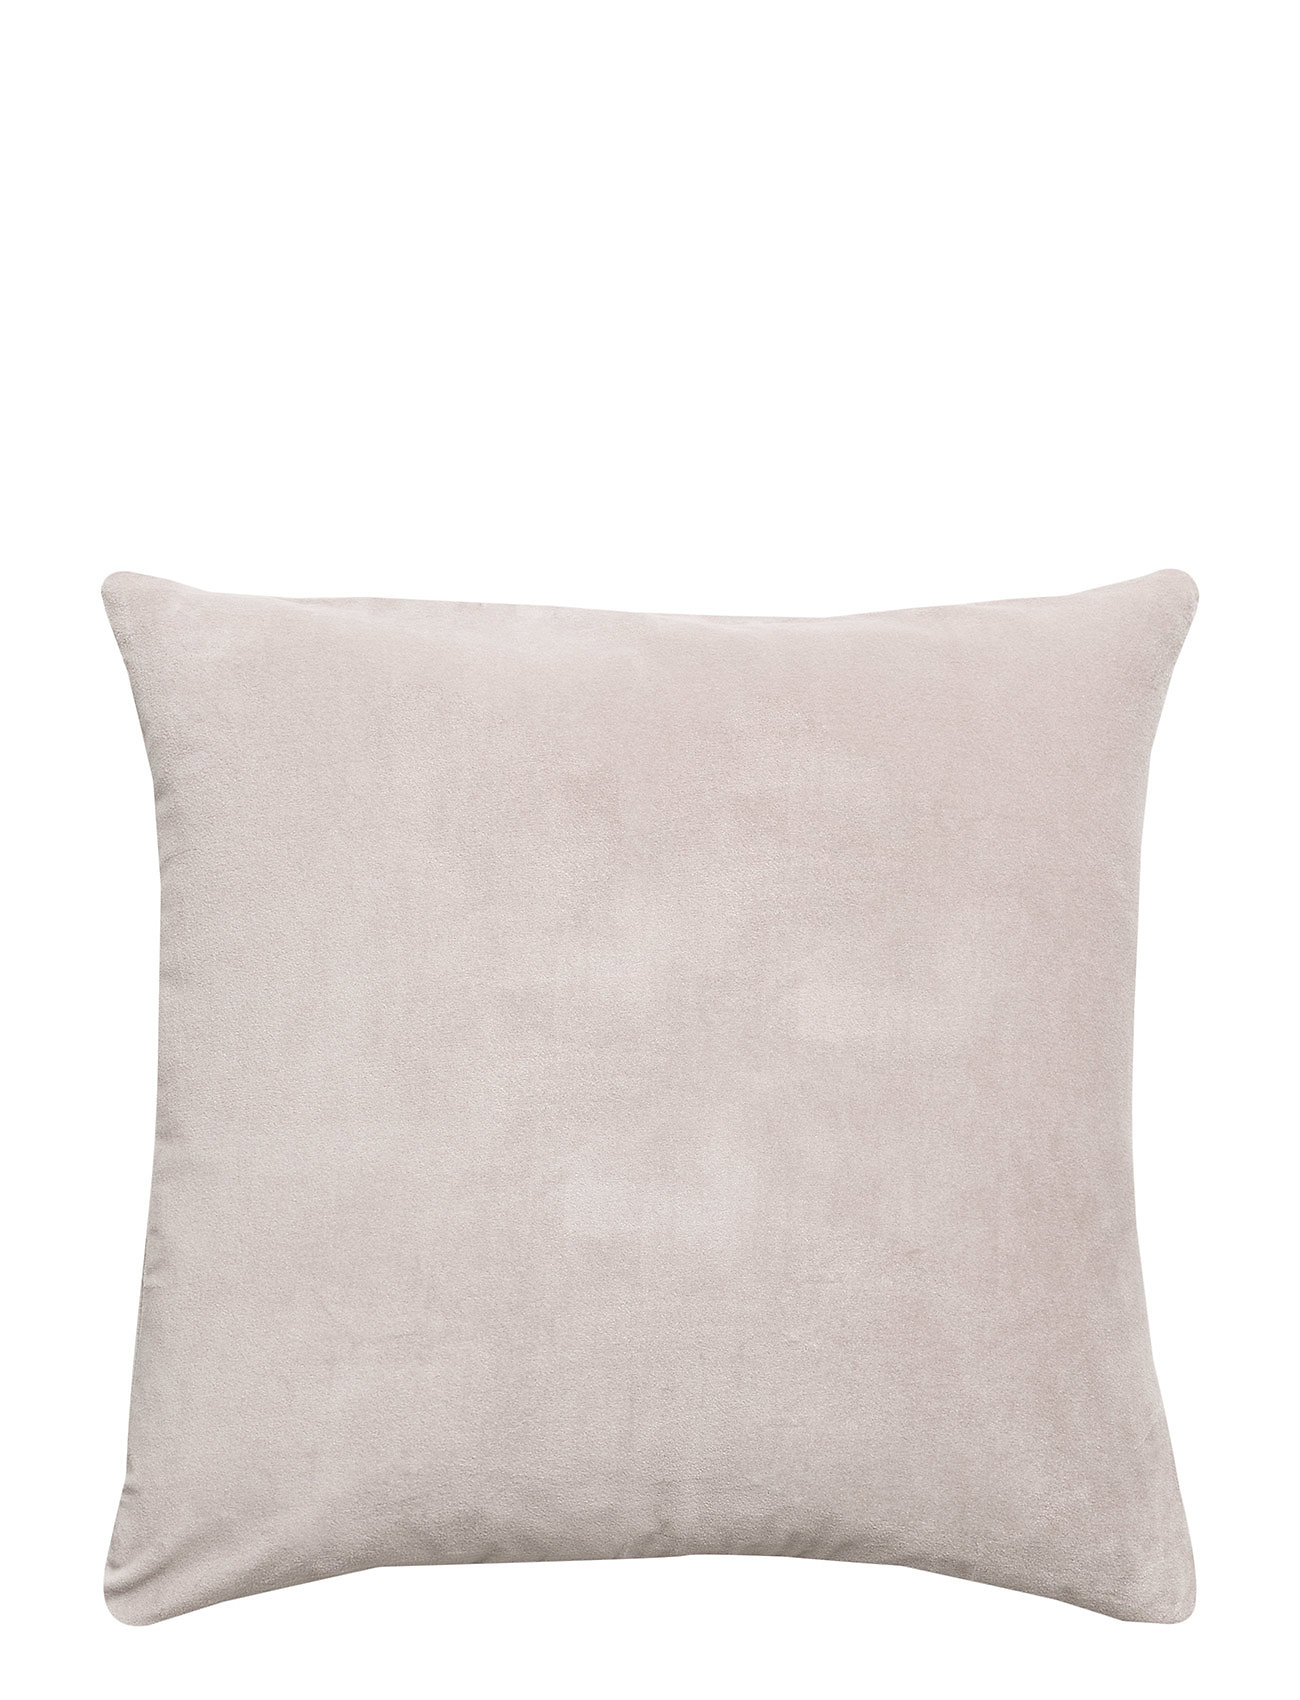 DAY Home Day Velveto Cushion Cover - ASHIS